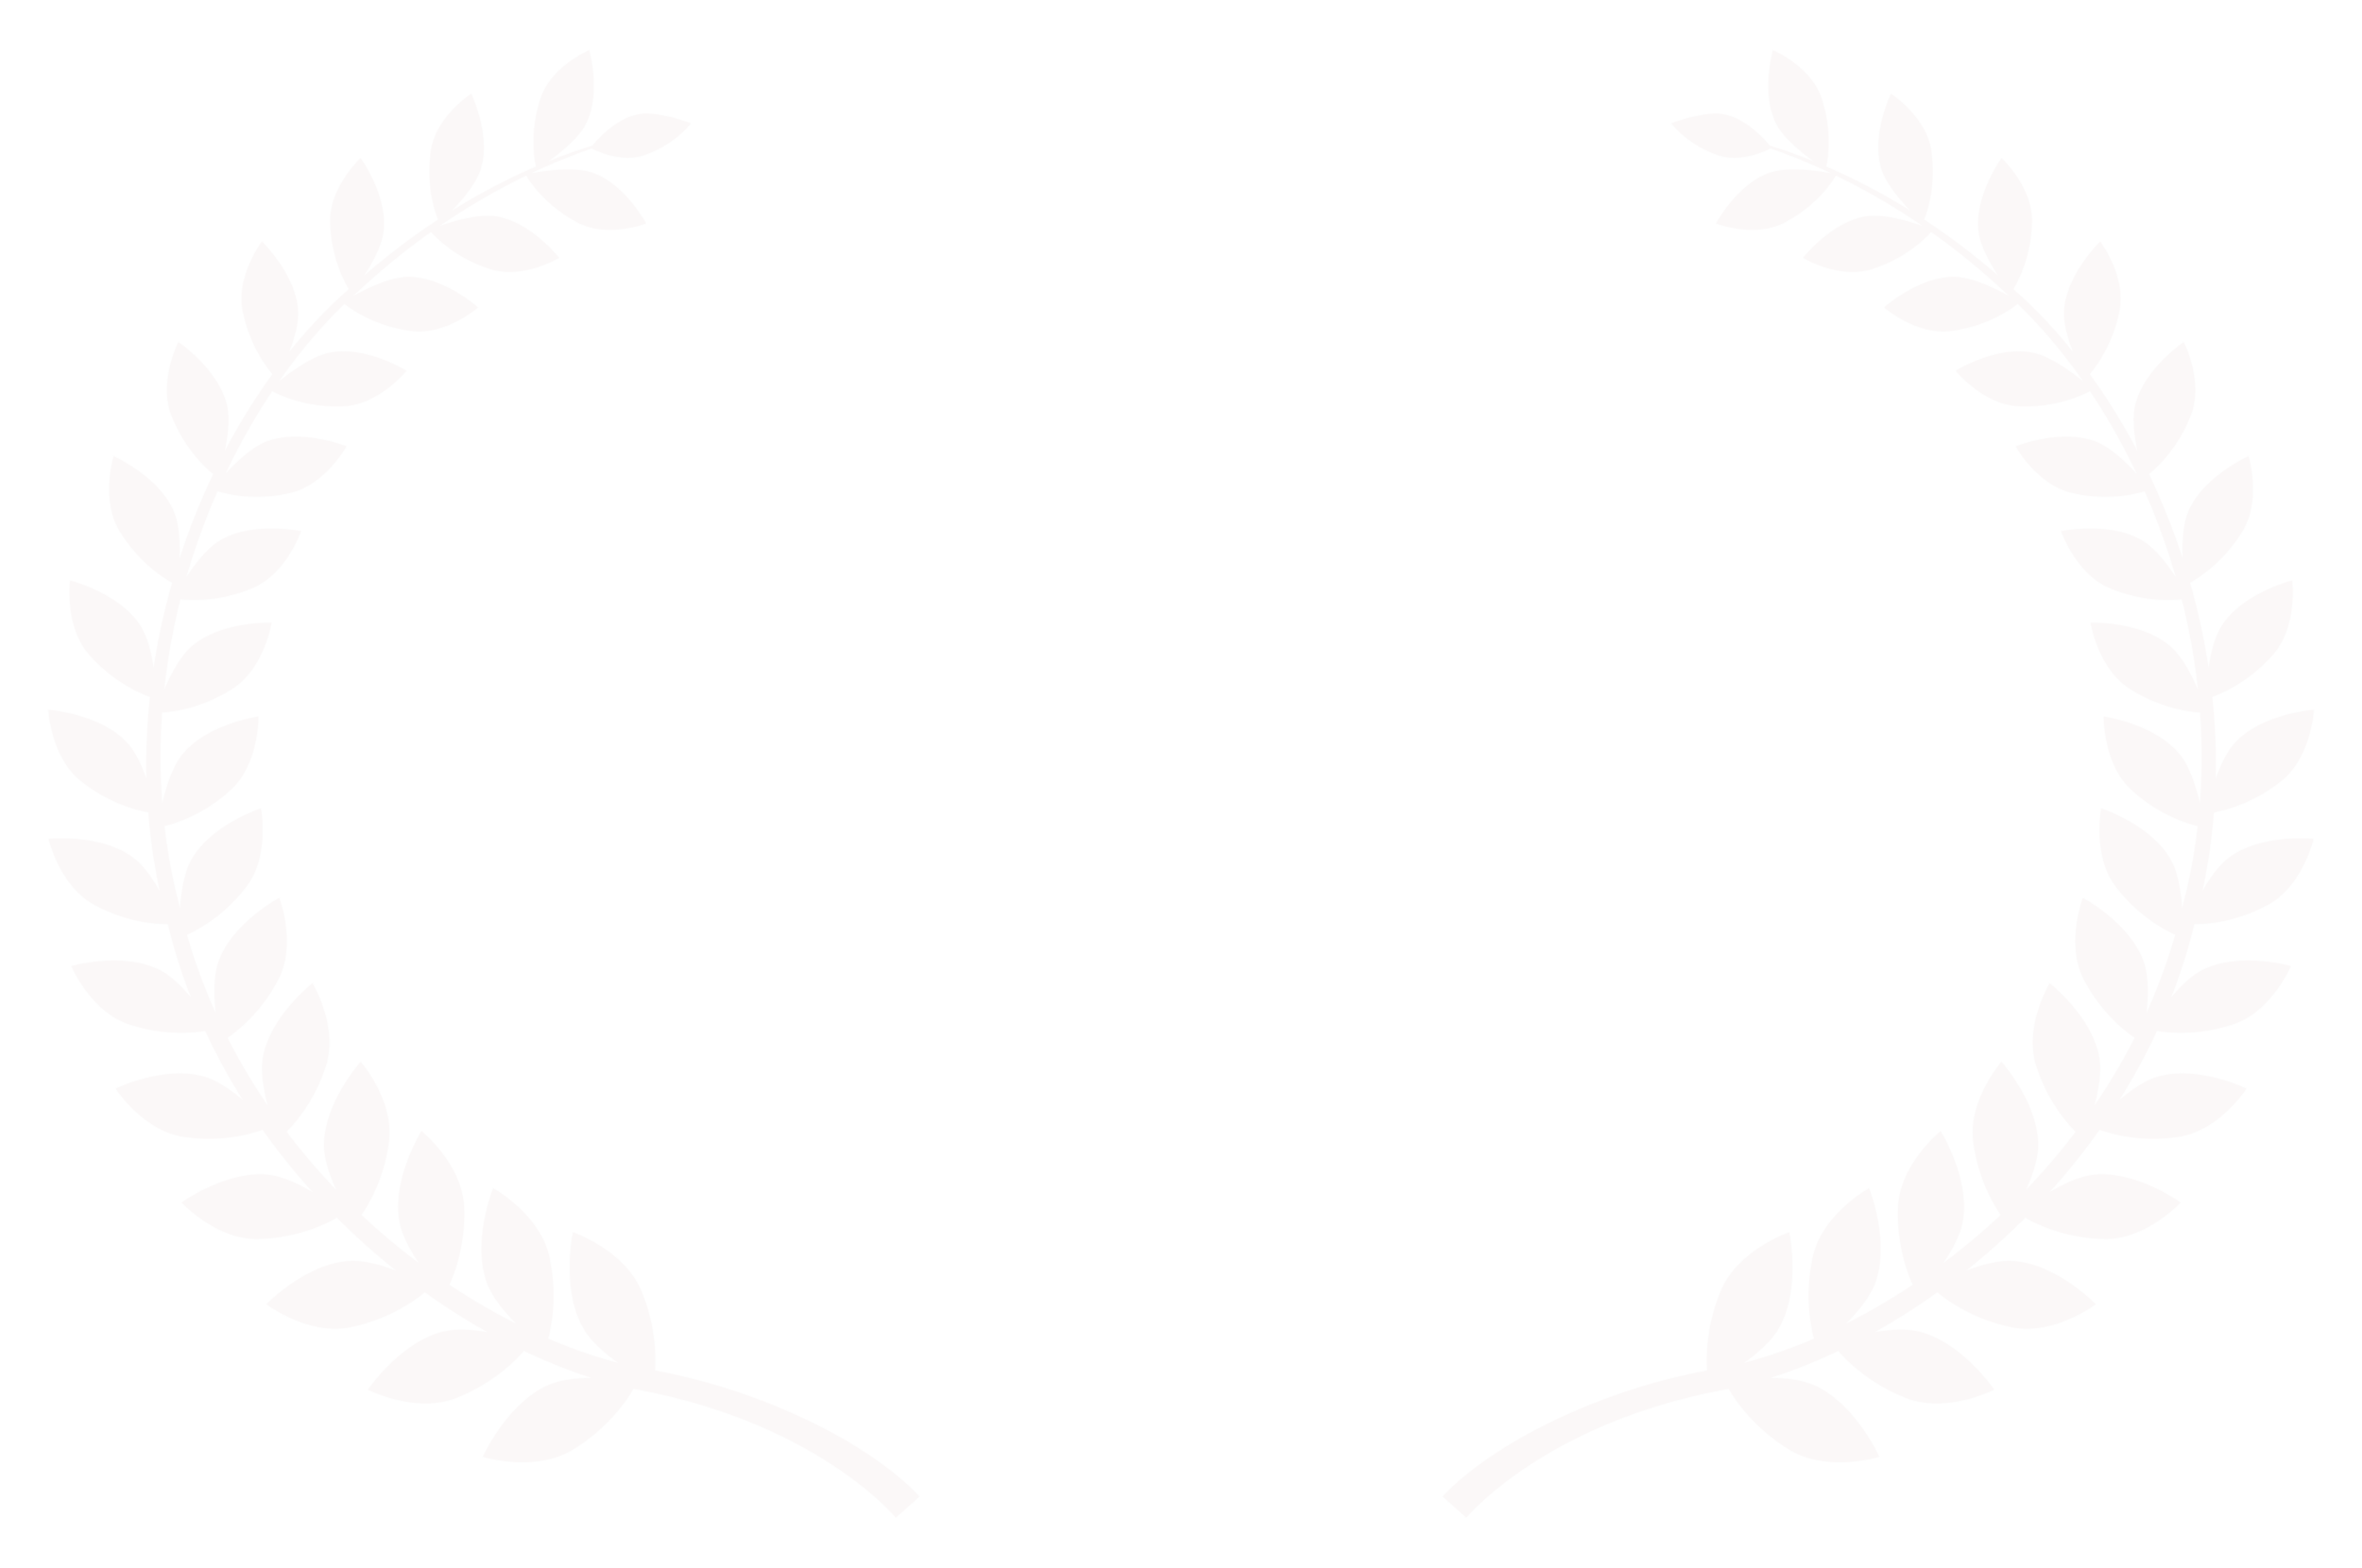 OFFICIALSELECTION-UnrestrictedViewHorrorFilmFestival-2018_WHITE.png